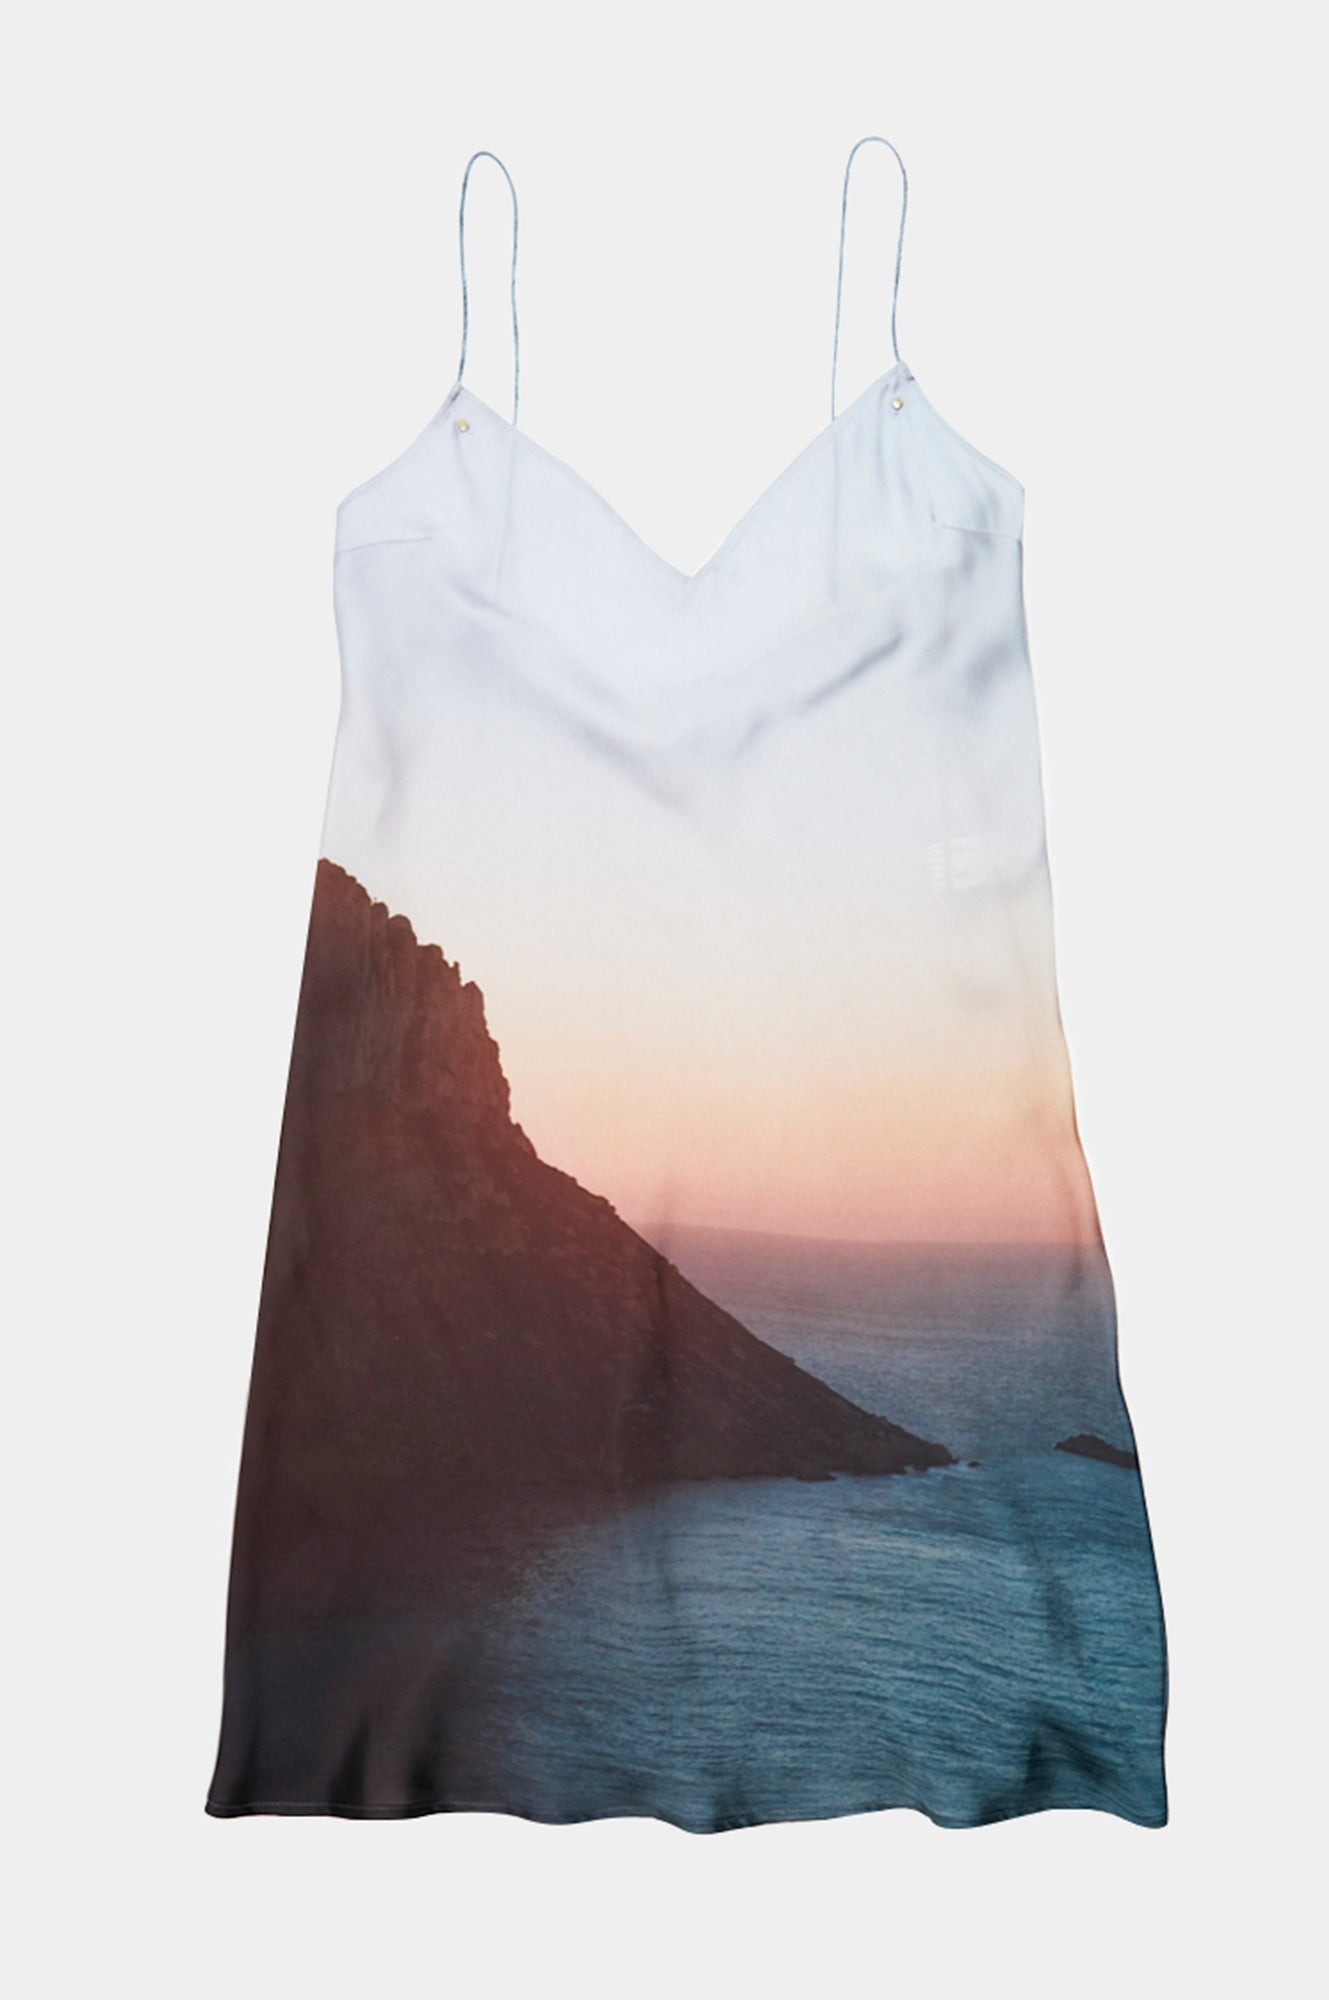 ES VEDRA SUNSET PRINT MINI DRESS - Esteban Cortazar